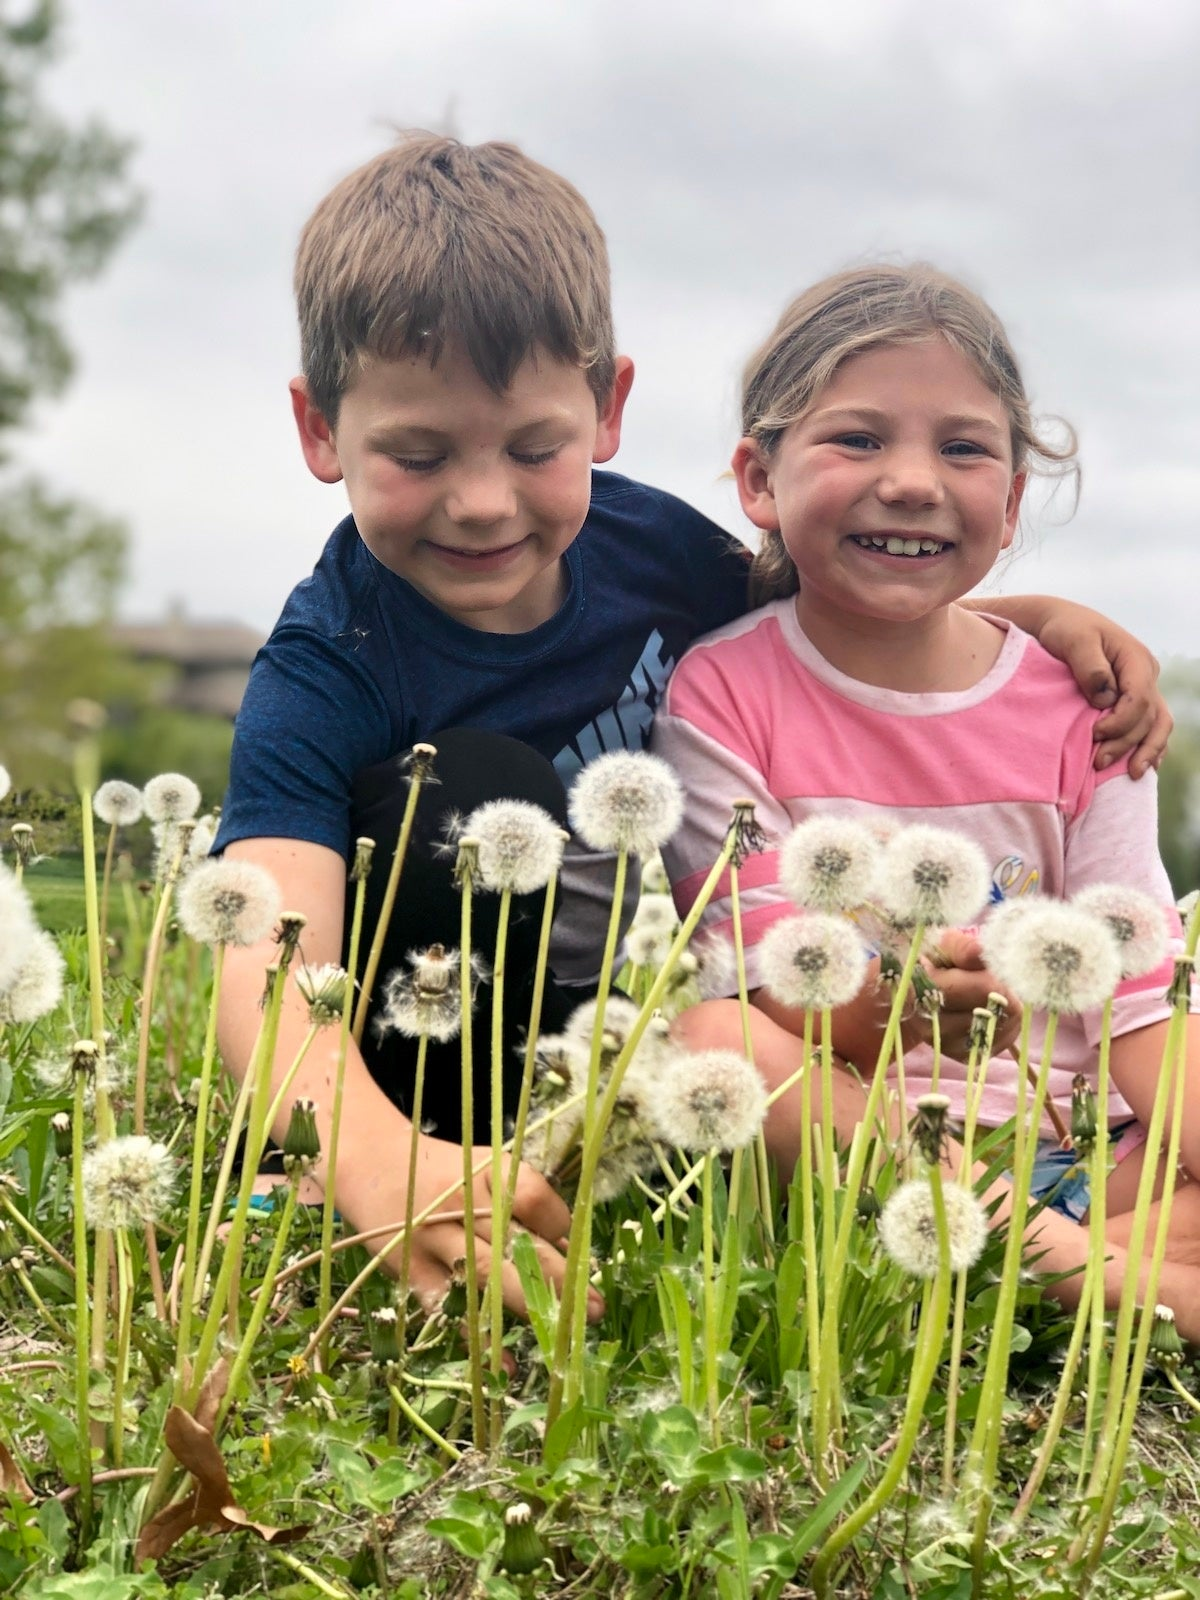 Why dandelions are the official flower of military kids